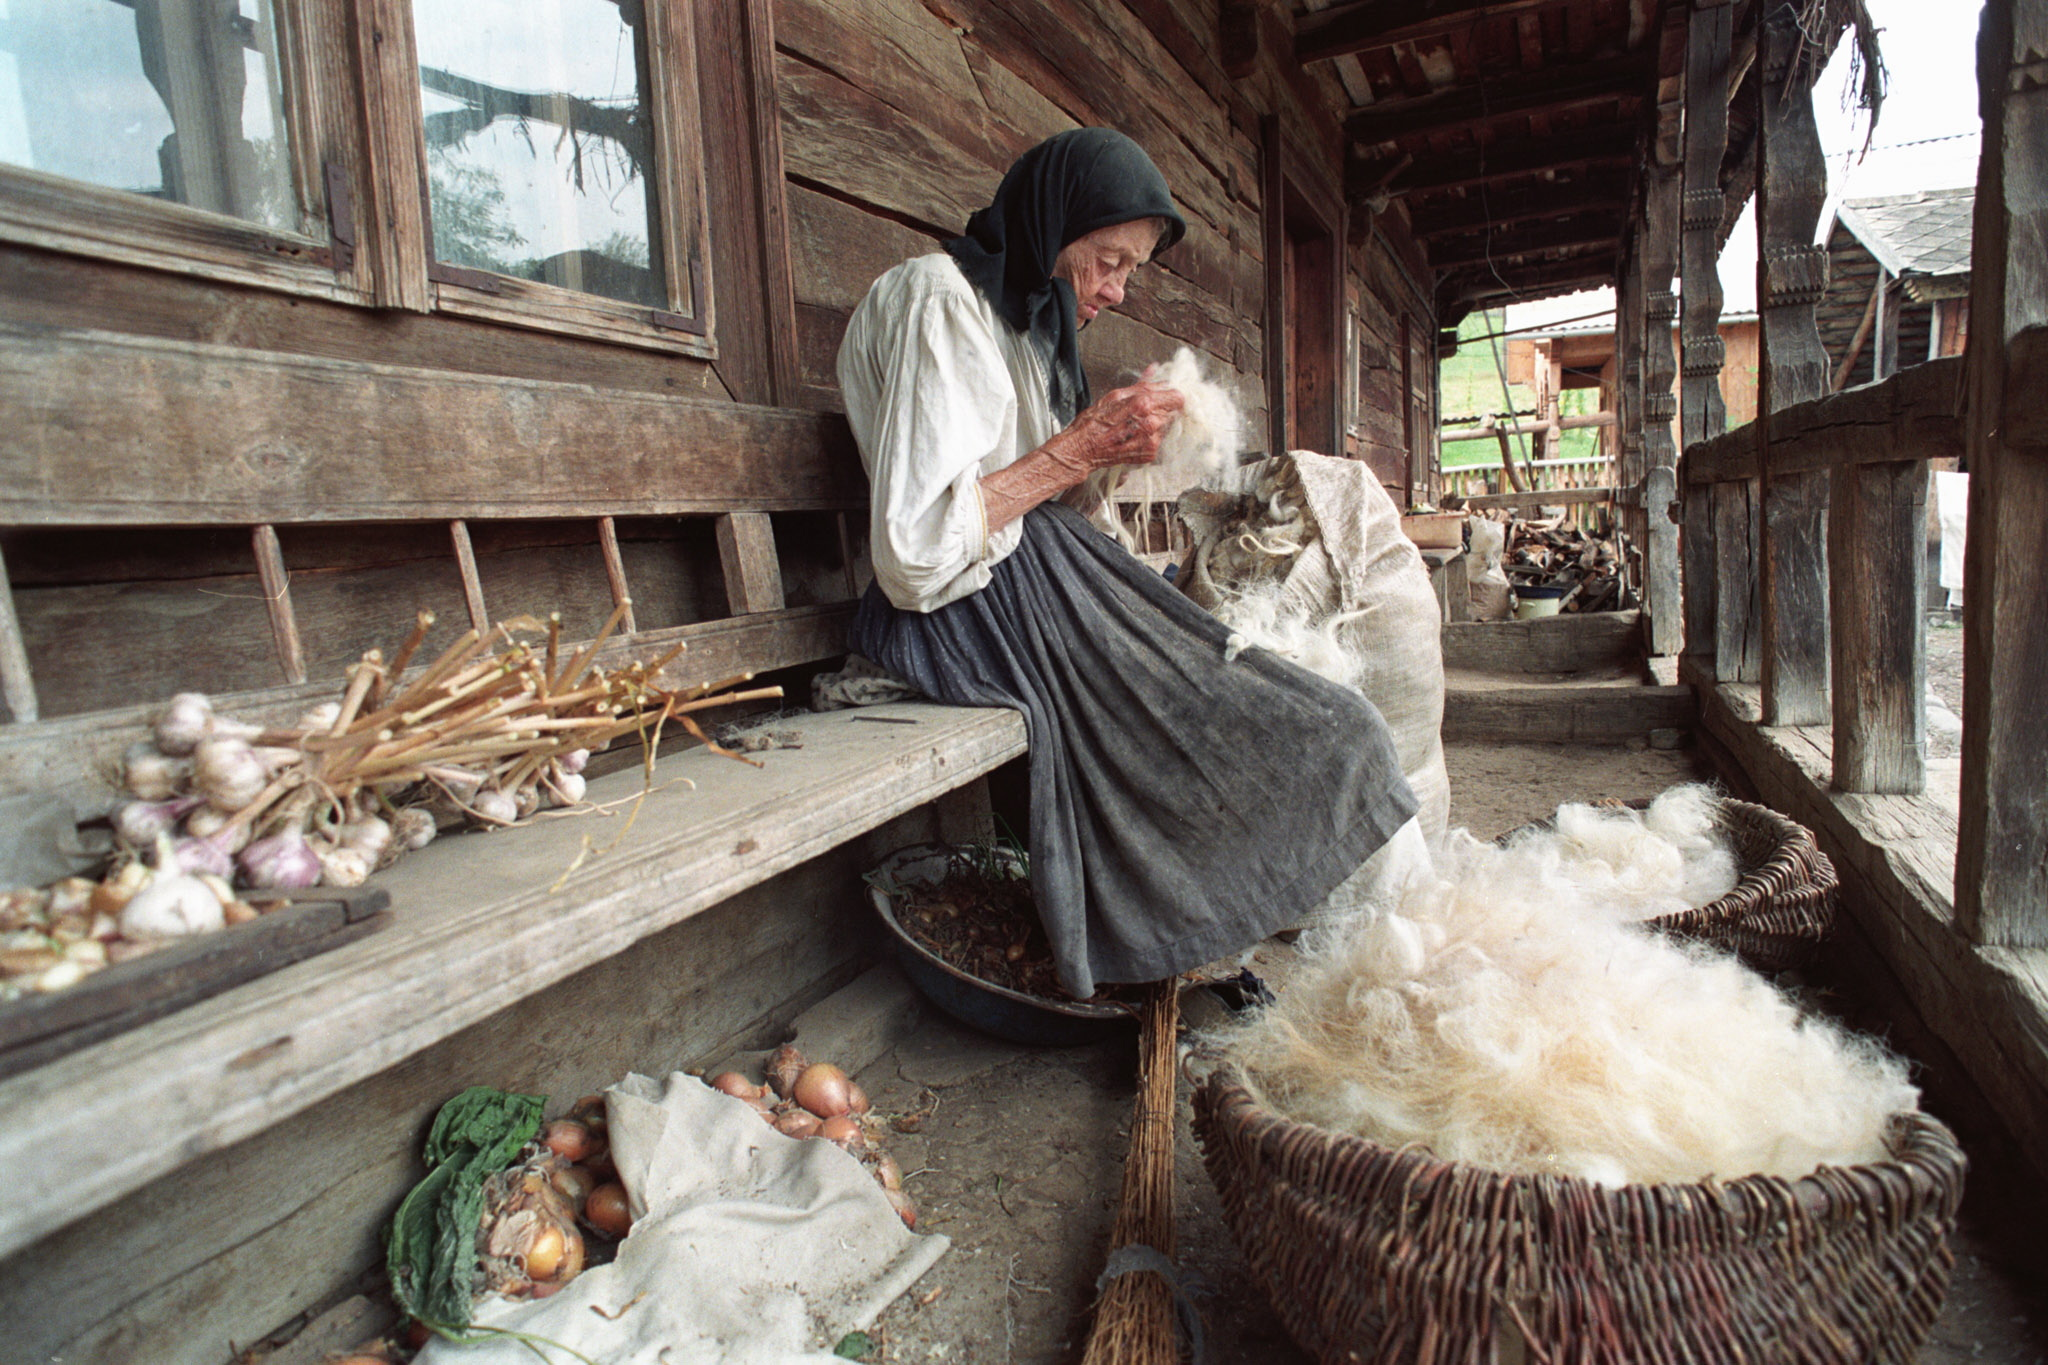 BOG01 - 20021202 - BOGDAN VODA, ROMANIA: Undated picture of  93-year-old peasant woman Ioana in a traditional dress cleaning wool by hand in order to manufacture wool clothes and carpets, in the village of Bogdan Voda, Maramures county (northern Romania).  EPA PHOTO / PAUL BUCIUTA